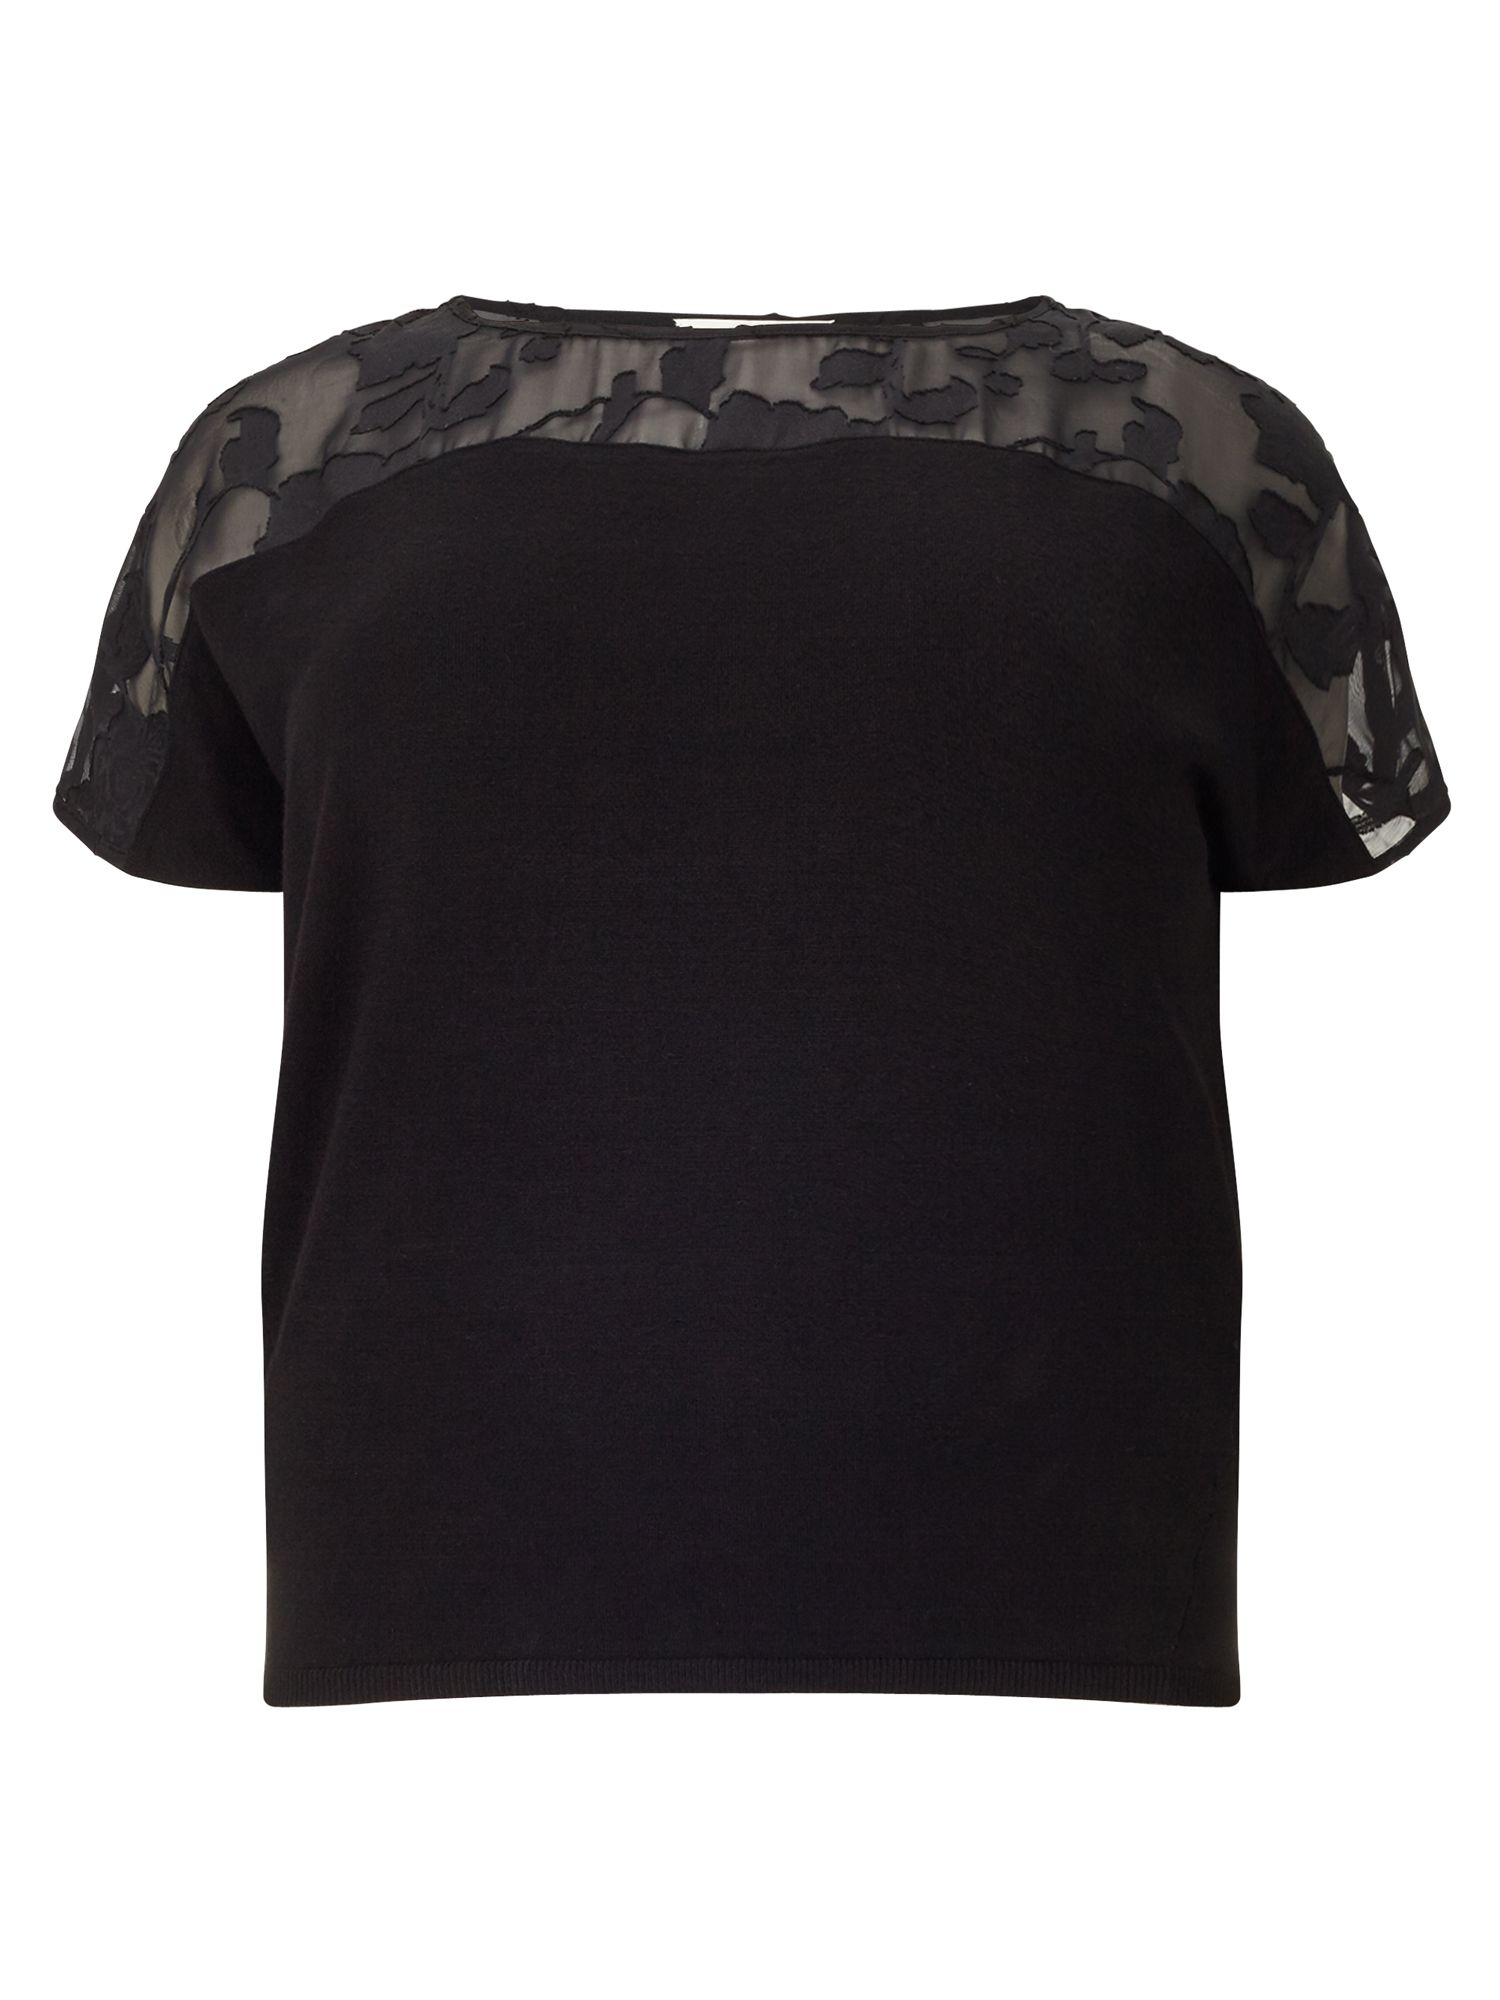 Studio 8 Cally top, Black